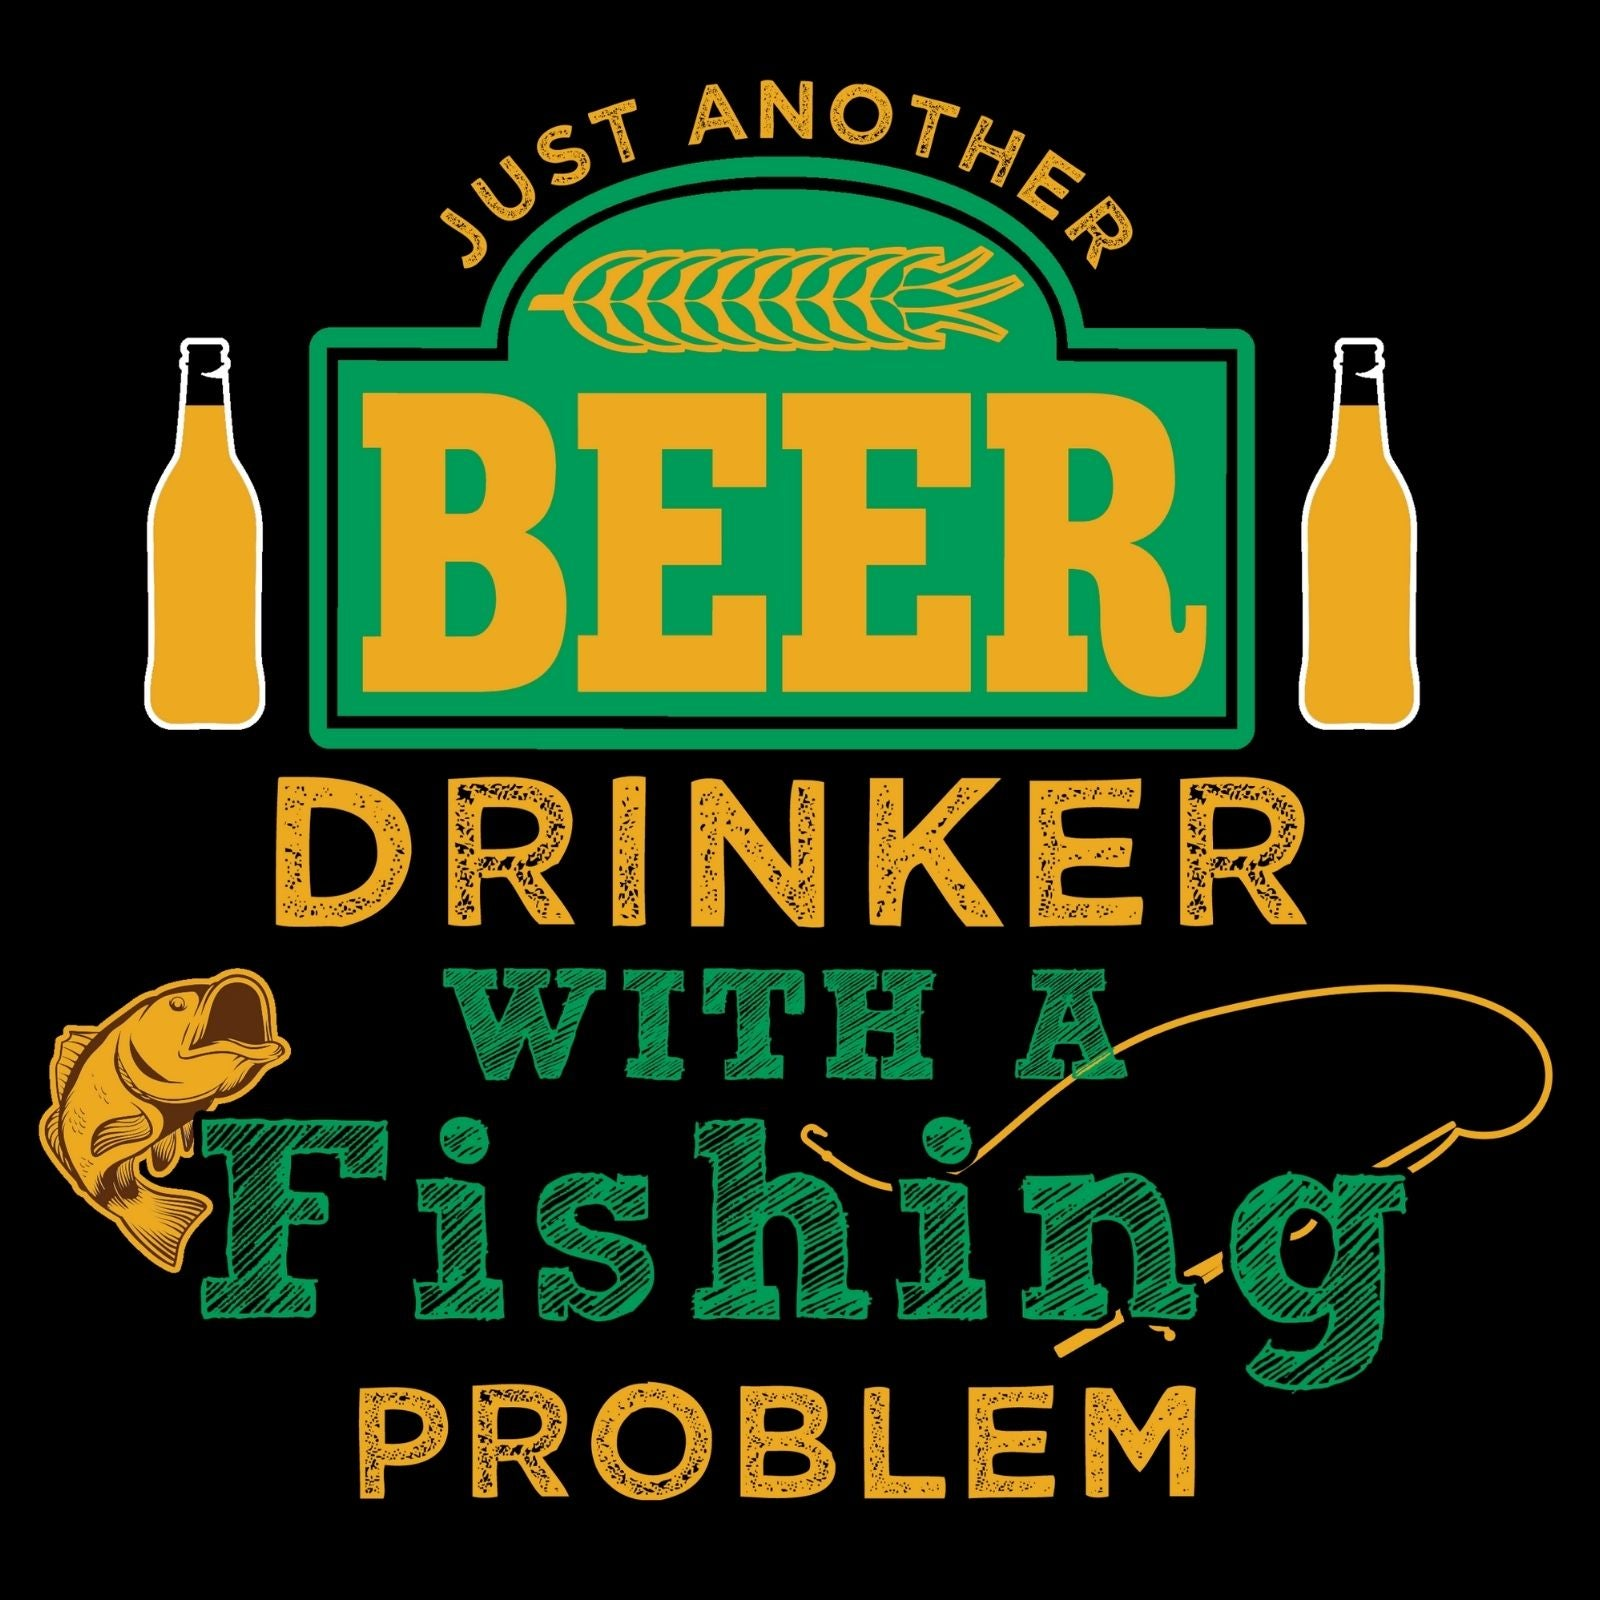 Just Another Beer Drinker With A Fishing Problem - Bastard Graphics